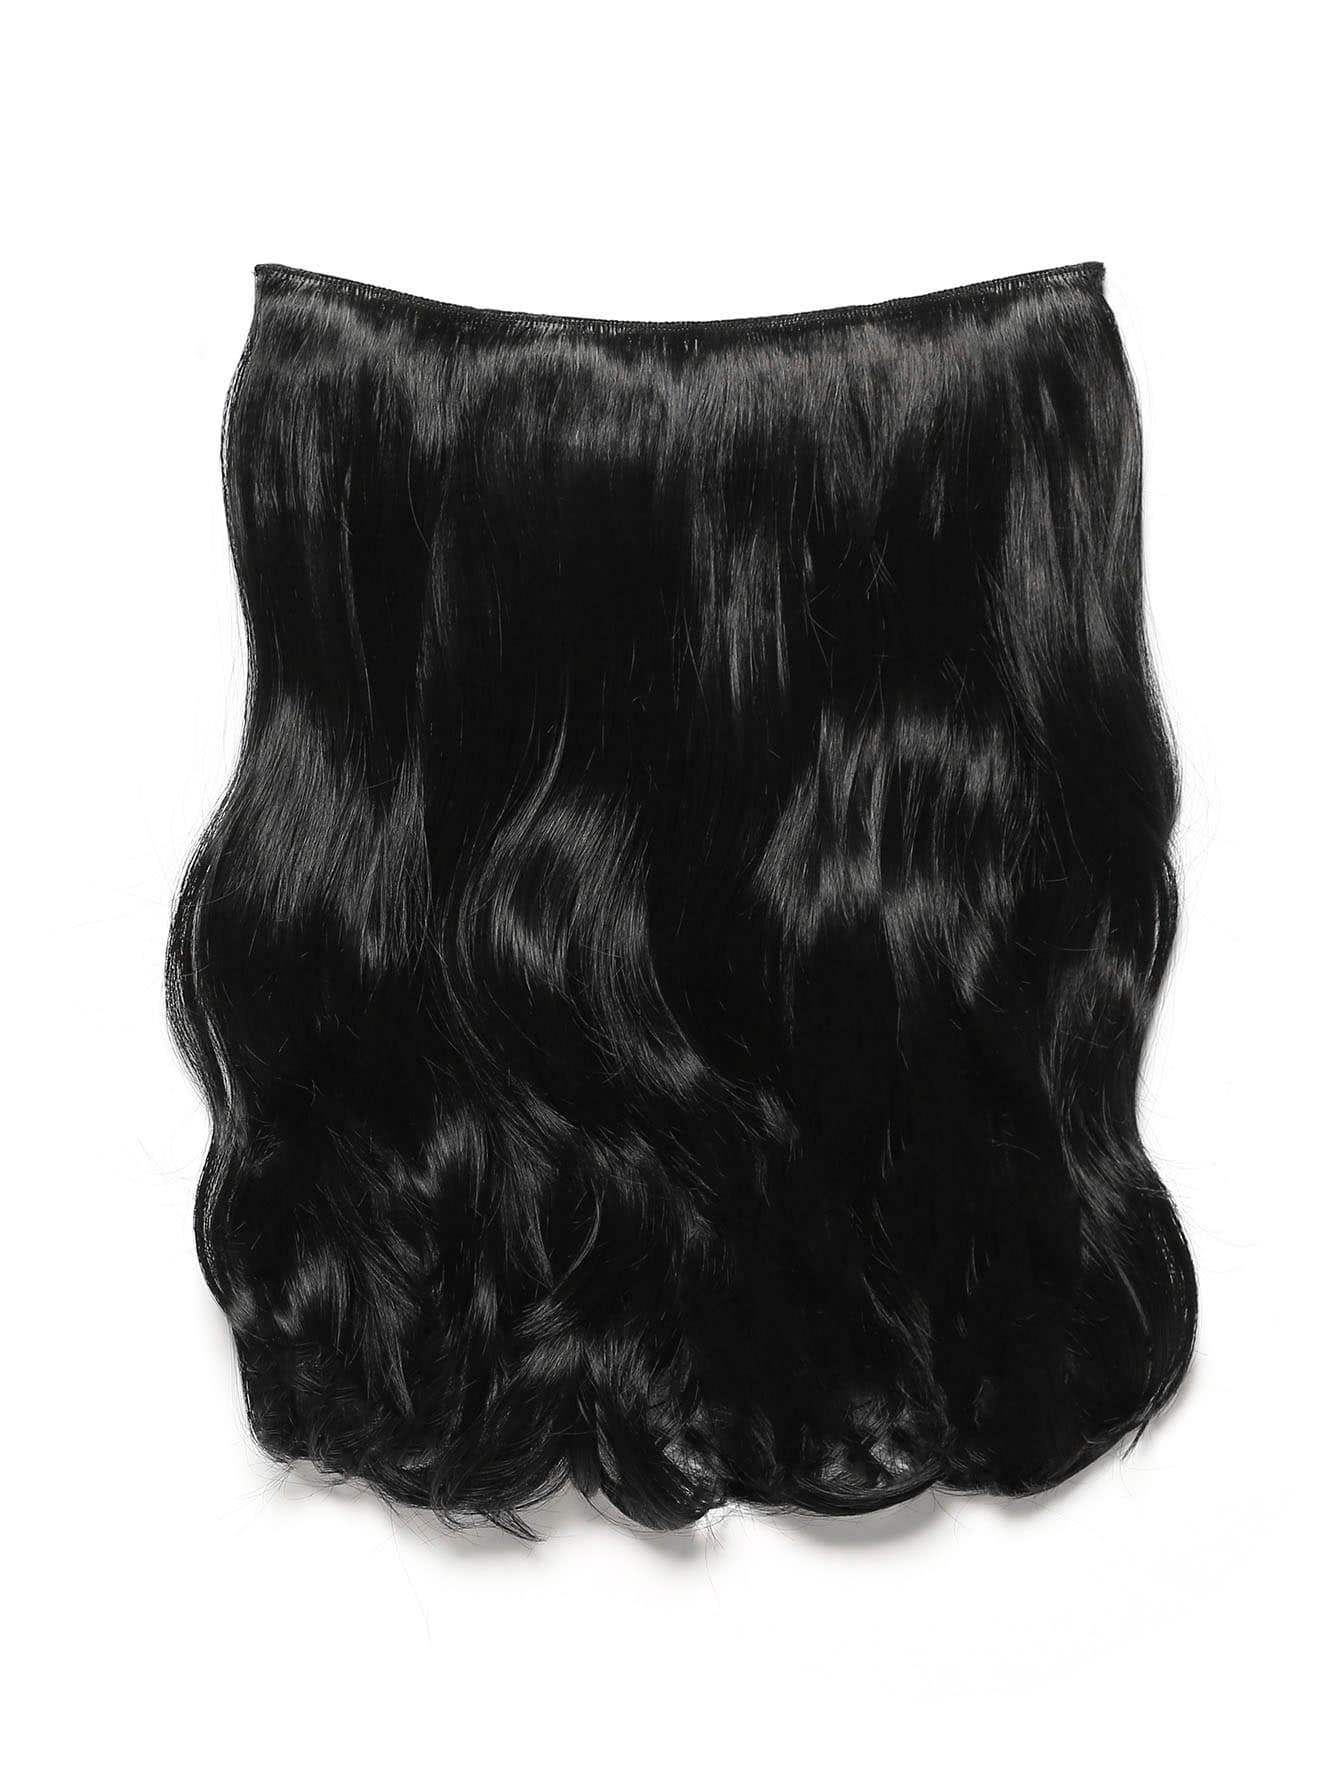 Фото Jet Black Clip In Soft Wave Hair Extension. Купить с доставкой